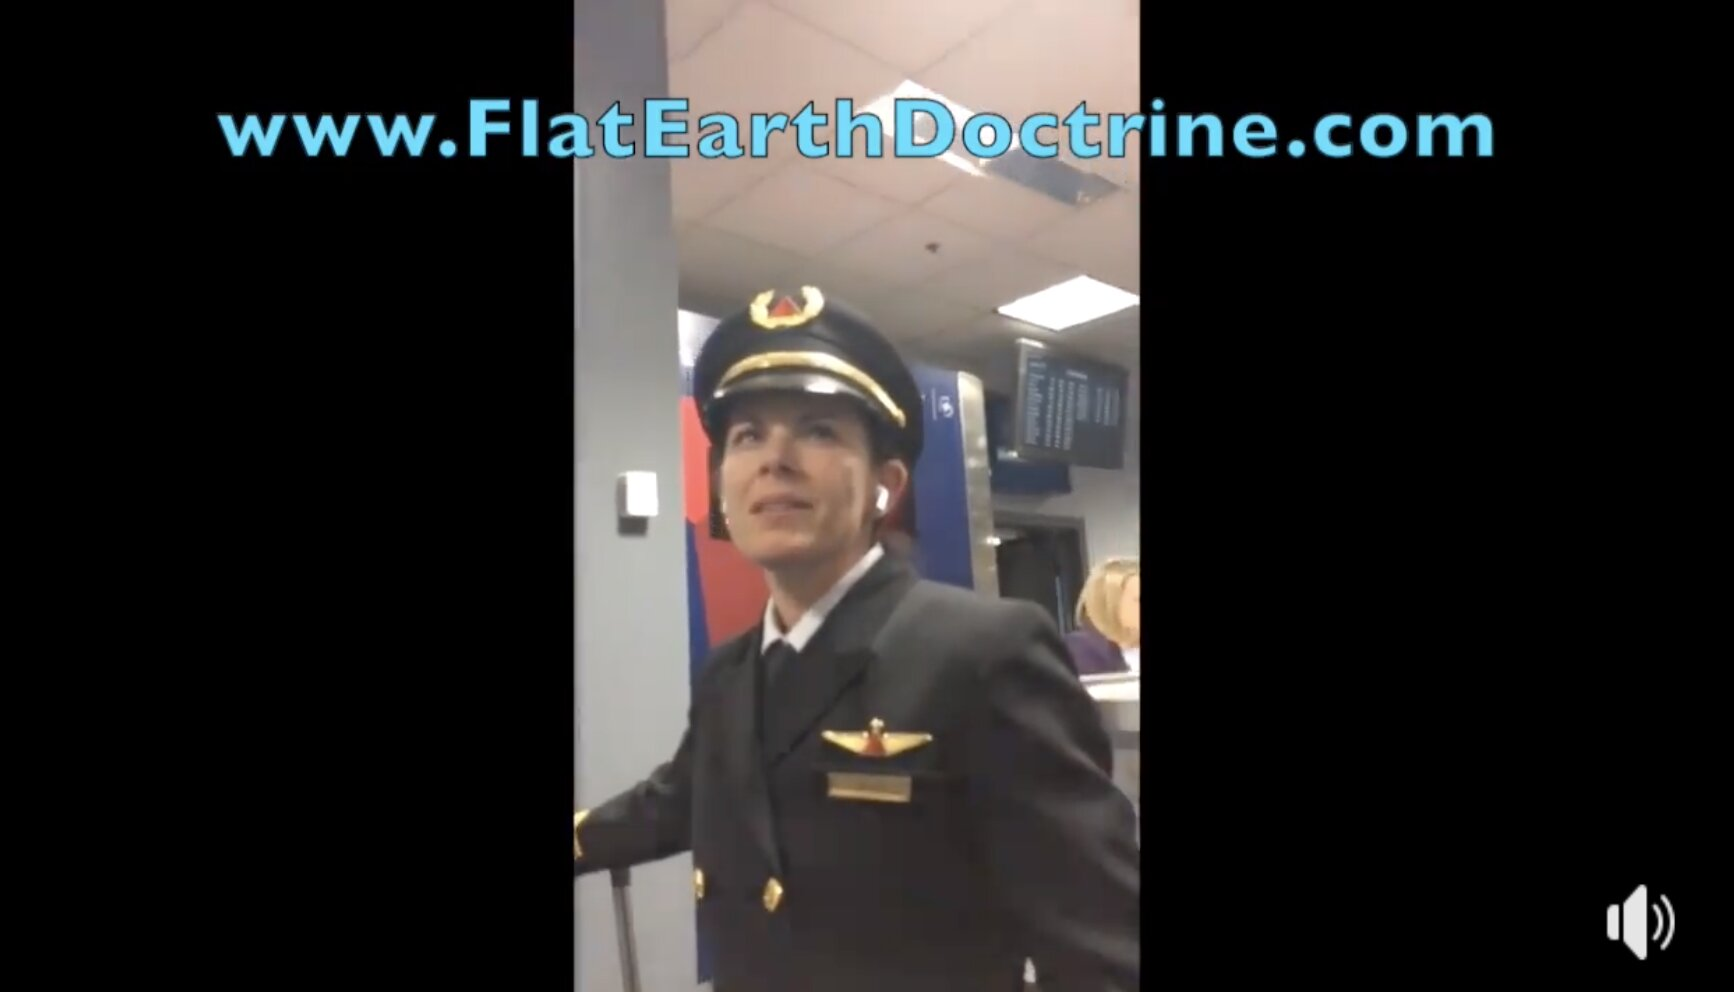 Commercial Pilot unknowingly ADMITS Flat Earth…!!!